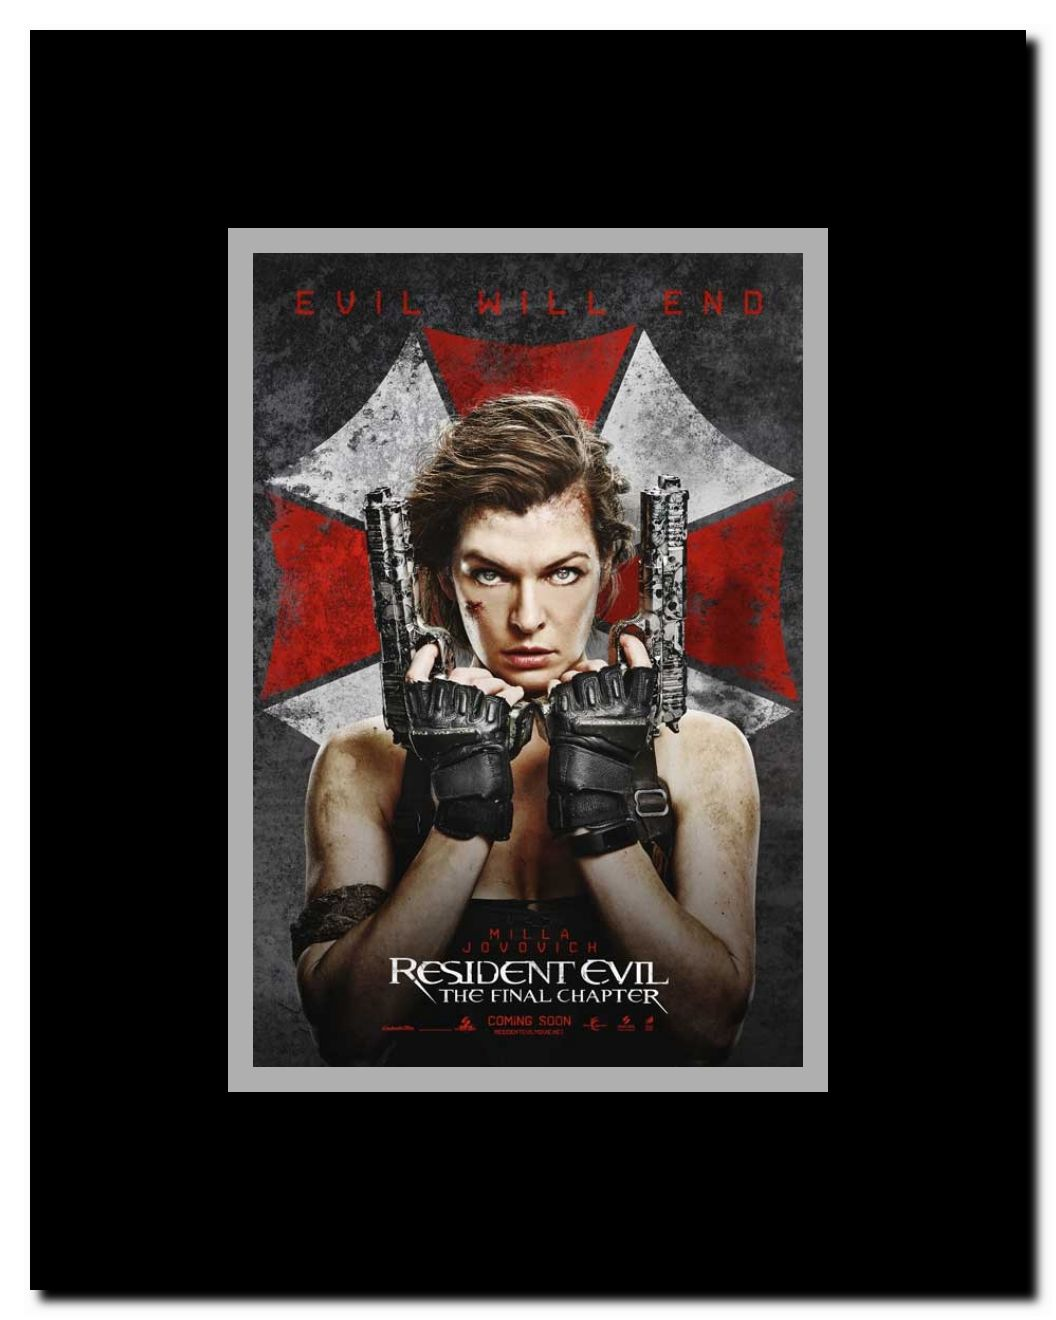 Resident Evil The Final Chapter Framed Movie Poster Walmart Com